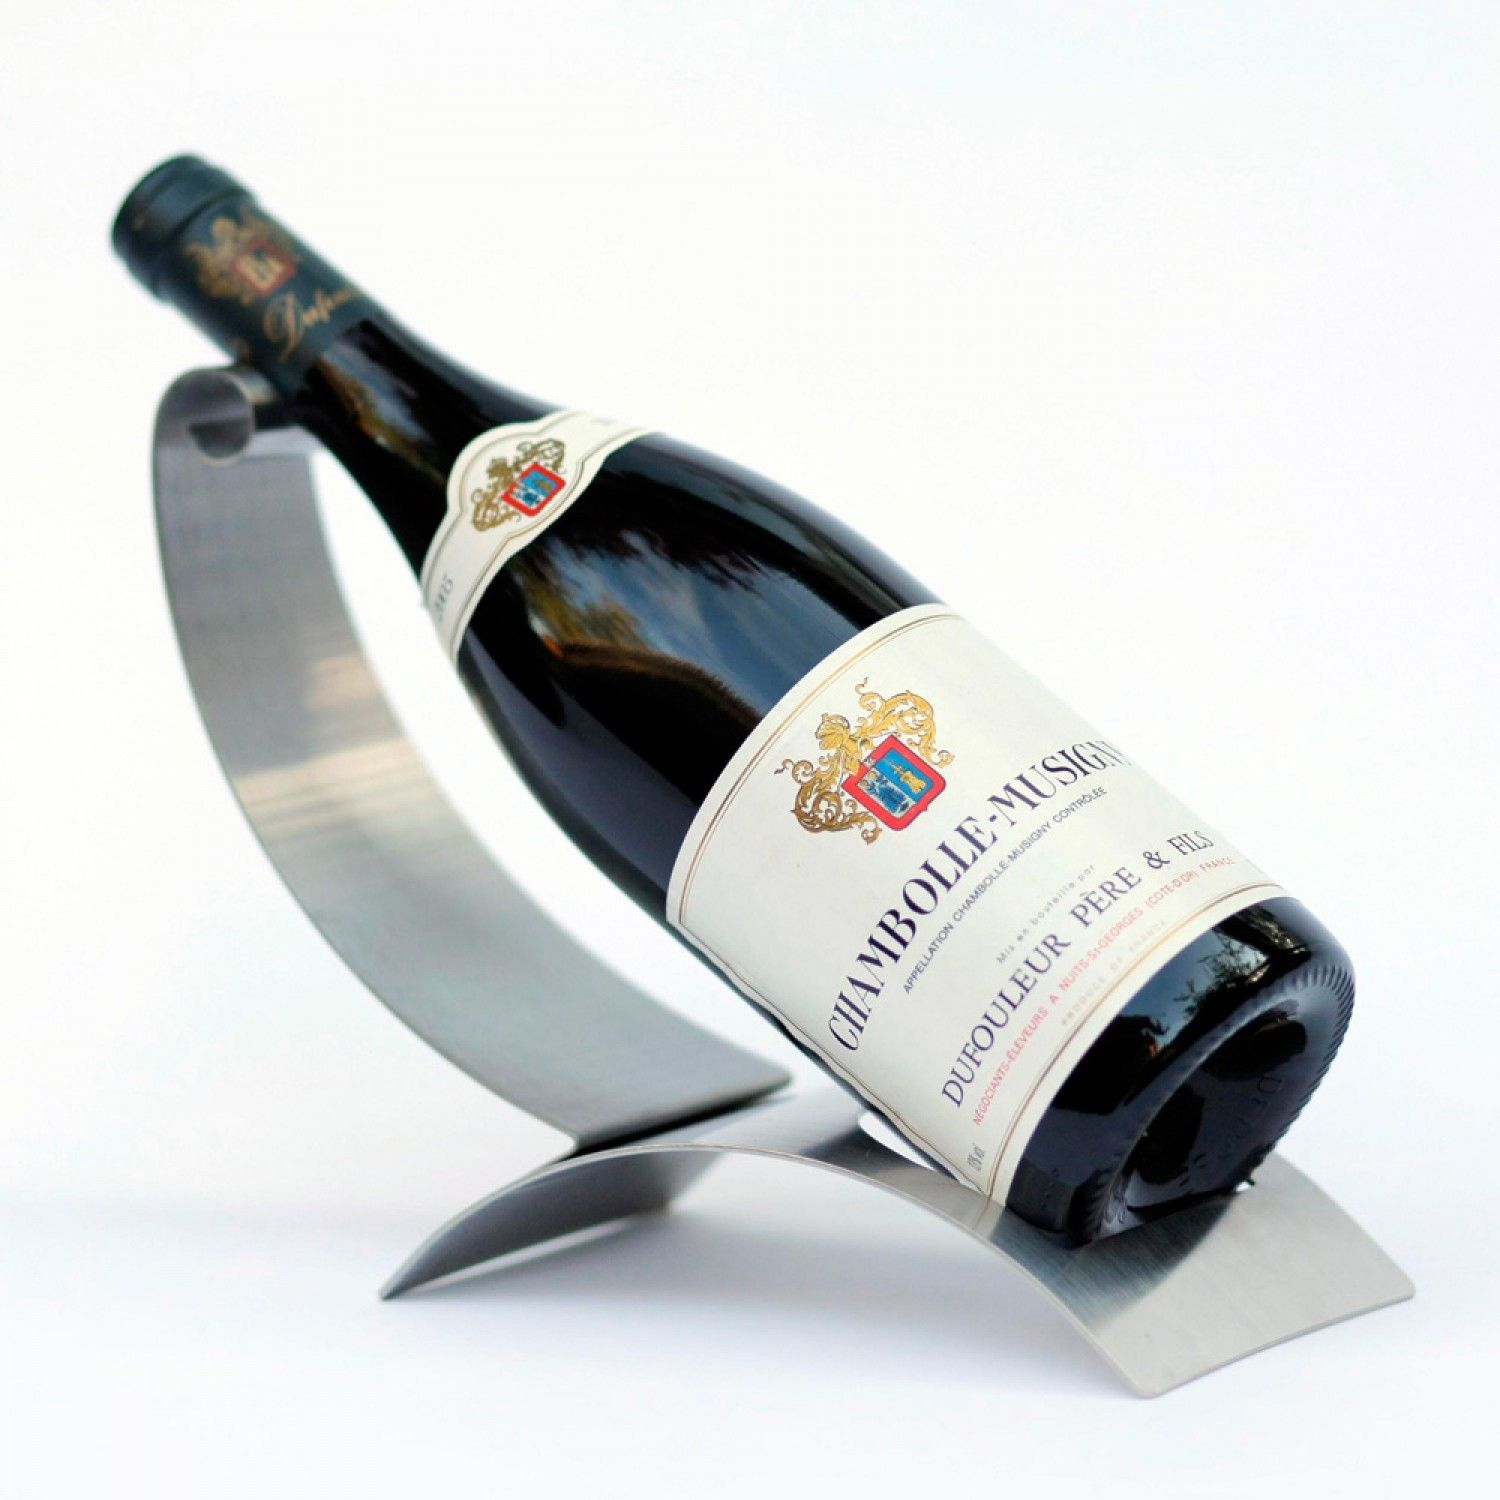 Chambolle Musigny - Dufouleur $32.95